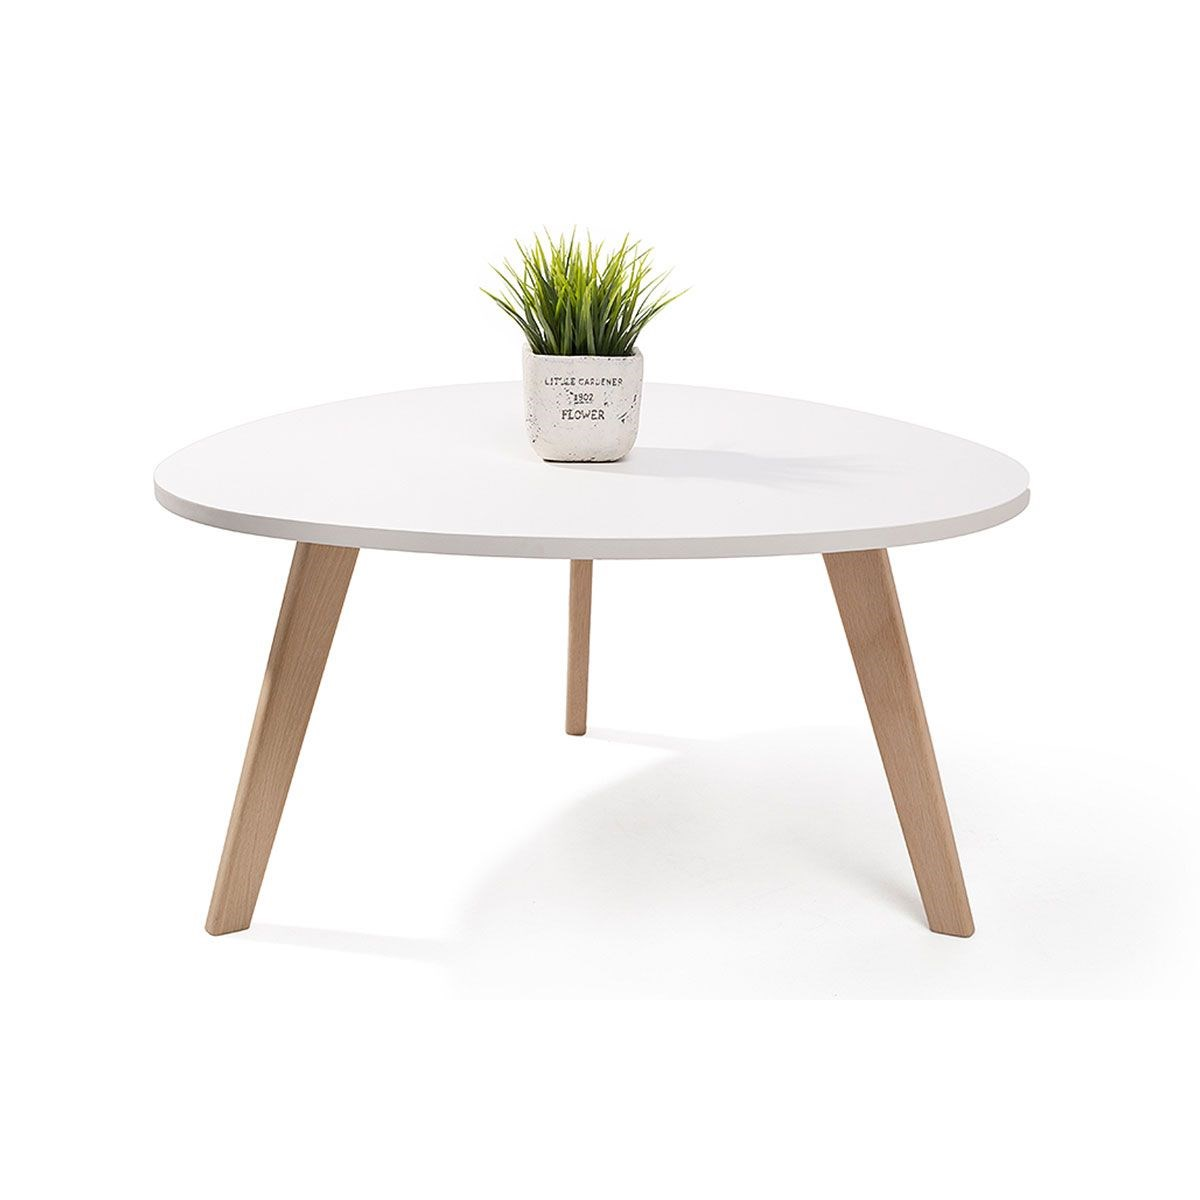 Alta table basse scandinave aspect galet pieds en bois for Pied de table scandinave